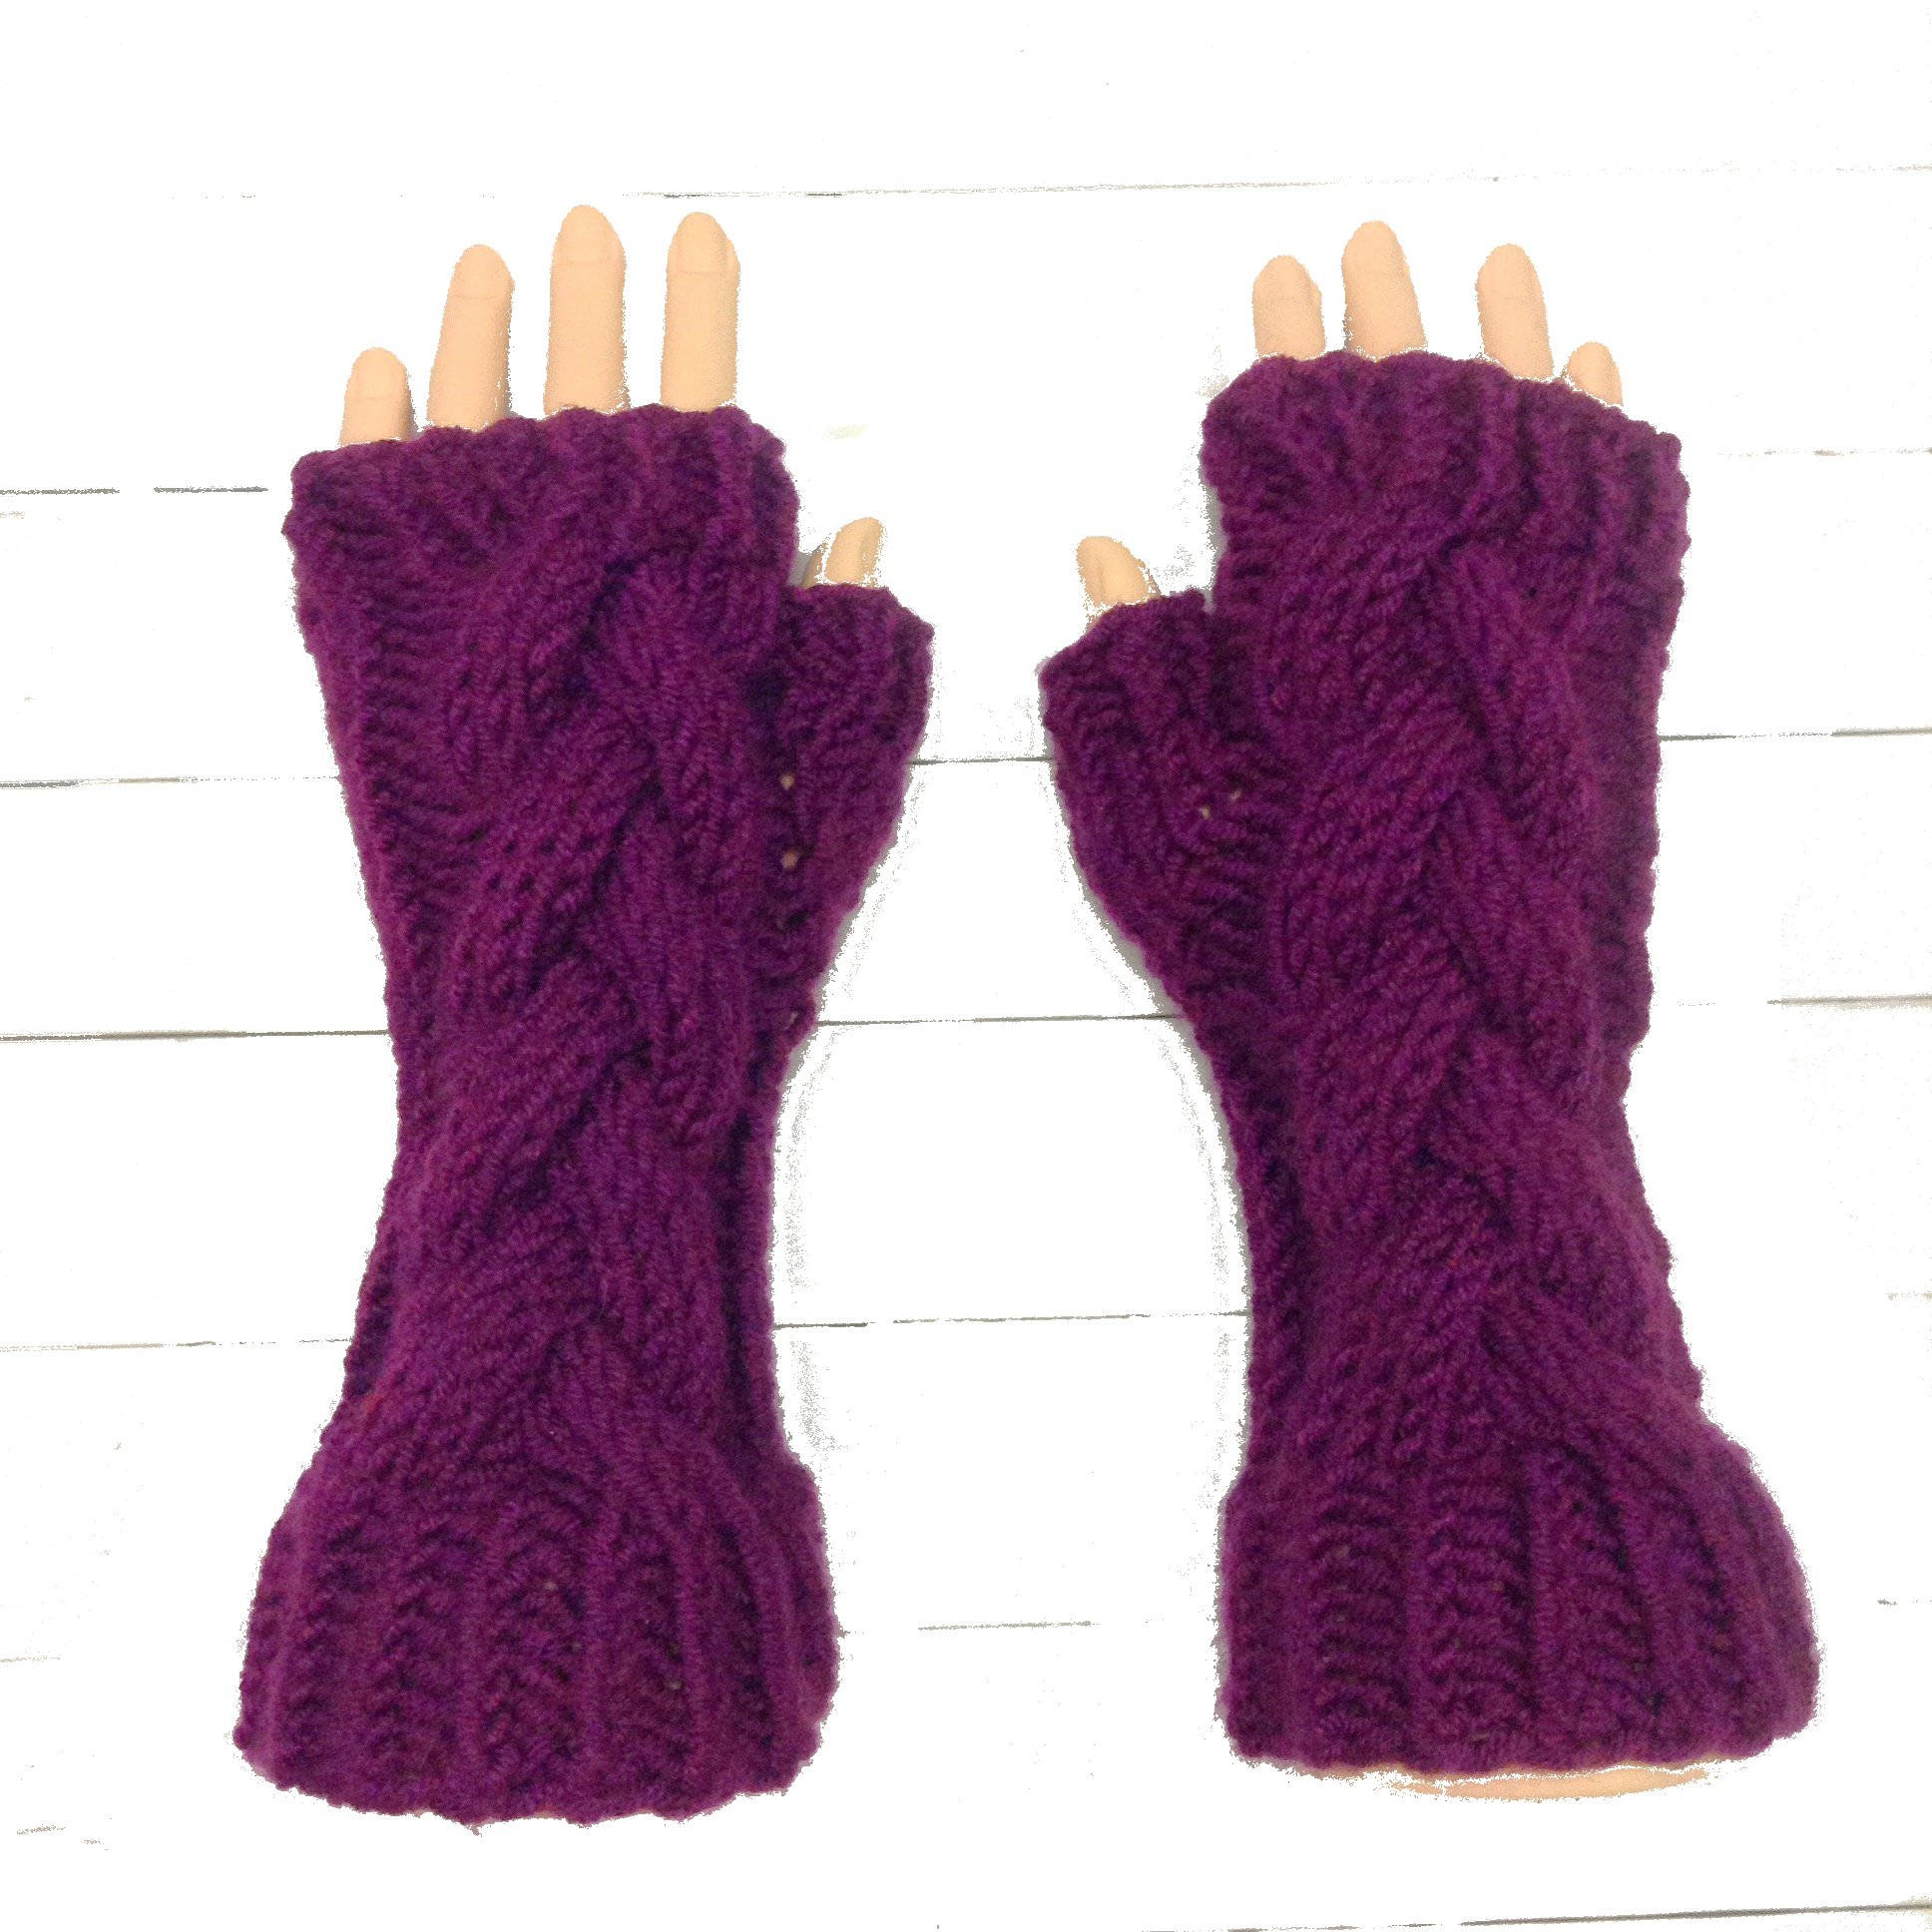 Knitting Pattern For Gloves Branch Cable Fingerless Gloves Knitting Pattern Womens Cable Gloves Pattern Fingerless Gloves Pattern Bulky Yarn Pattern